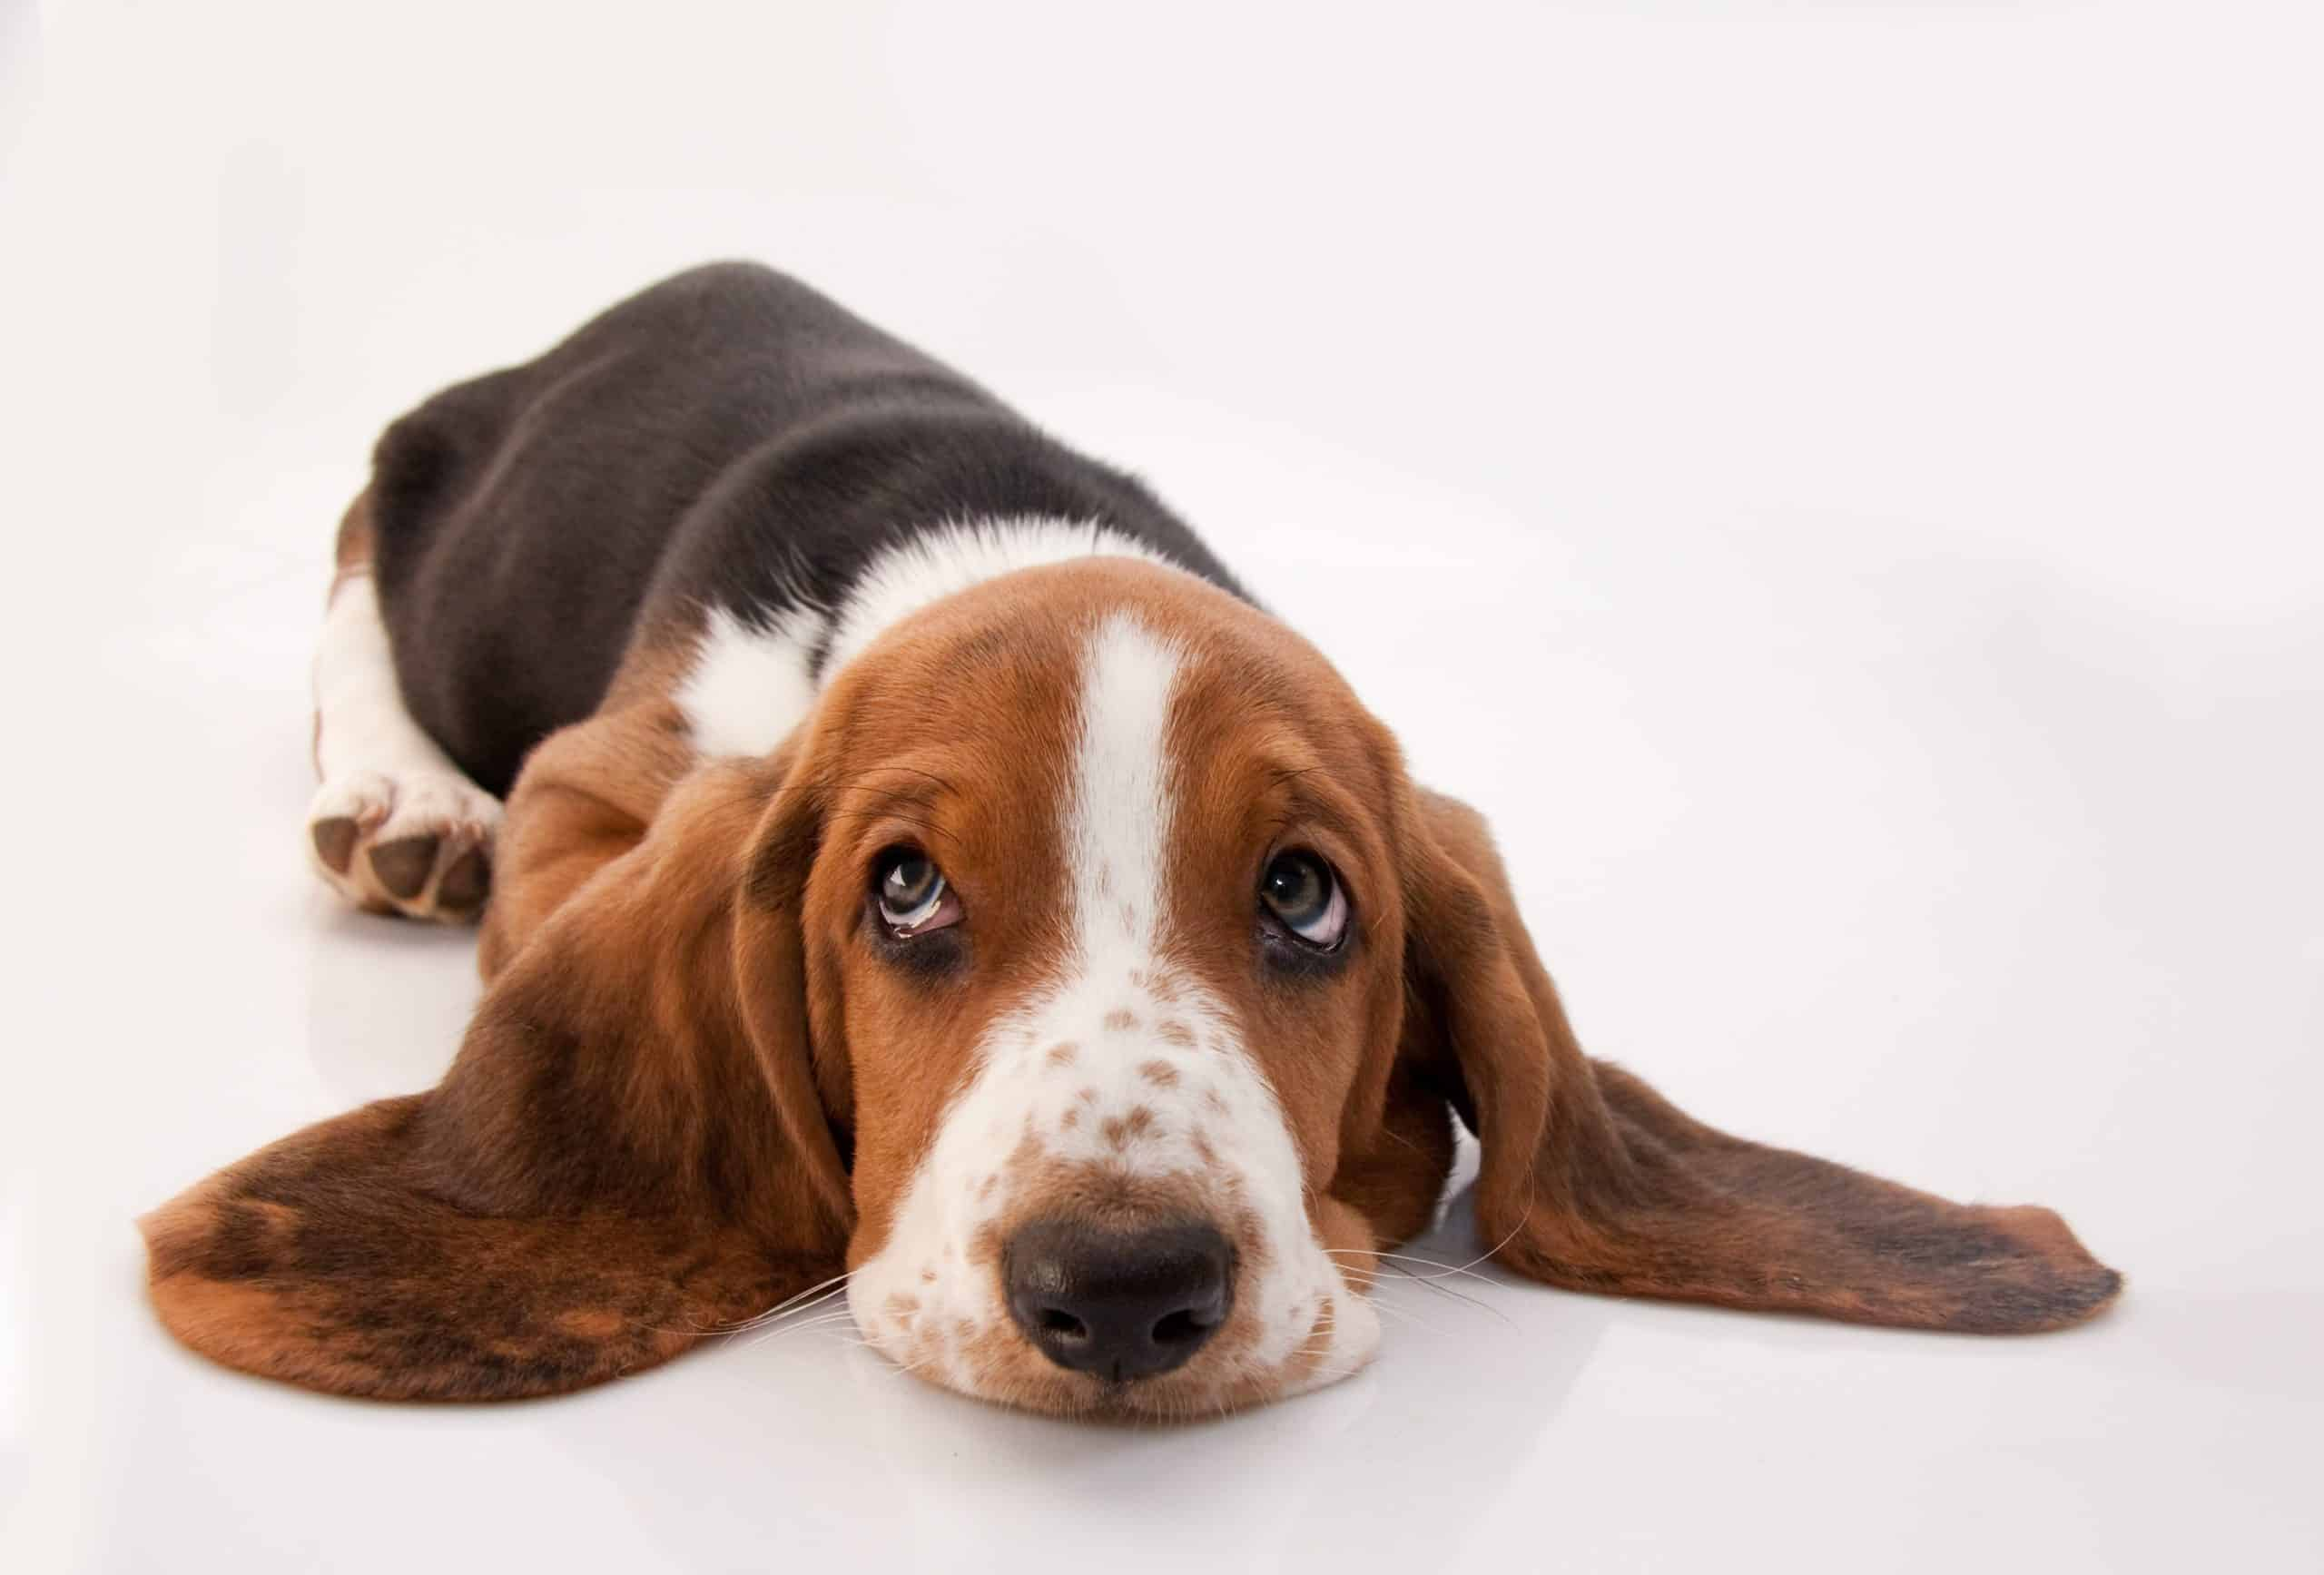 Bassett hound on white background. Basset Hounds have a calm and lazy nature.